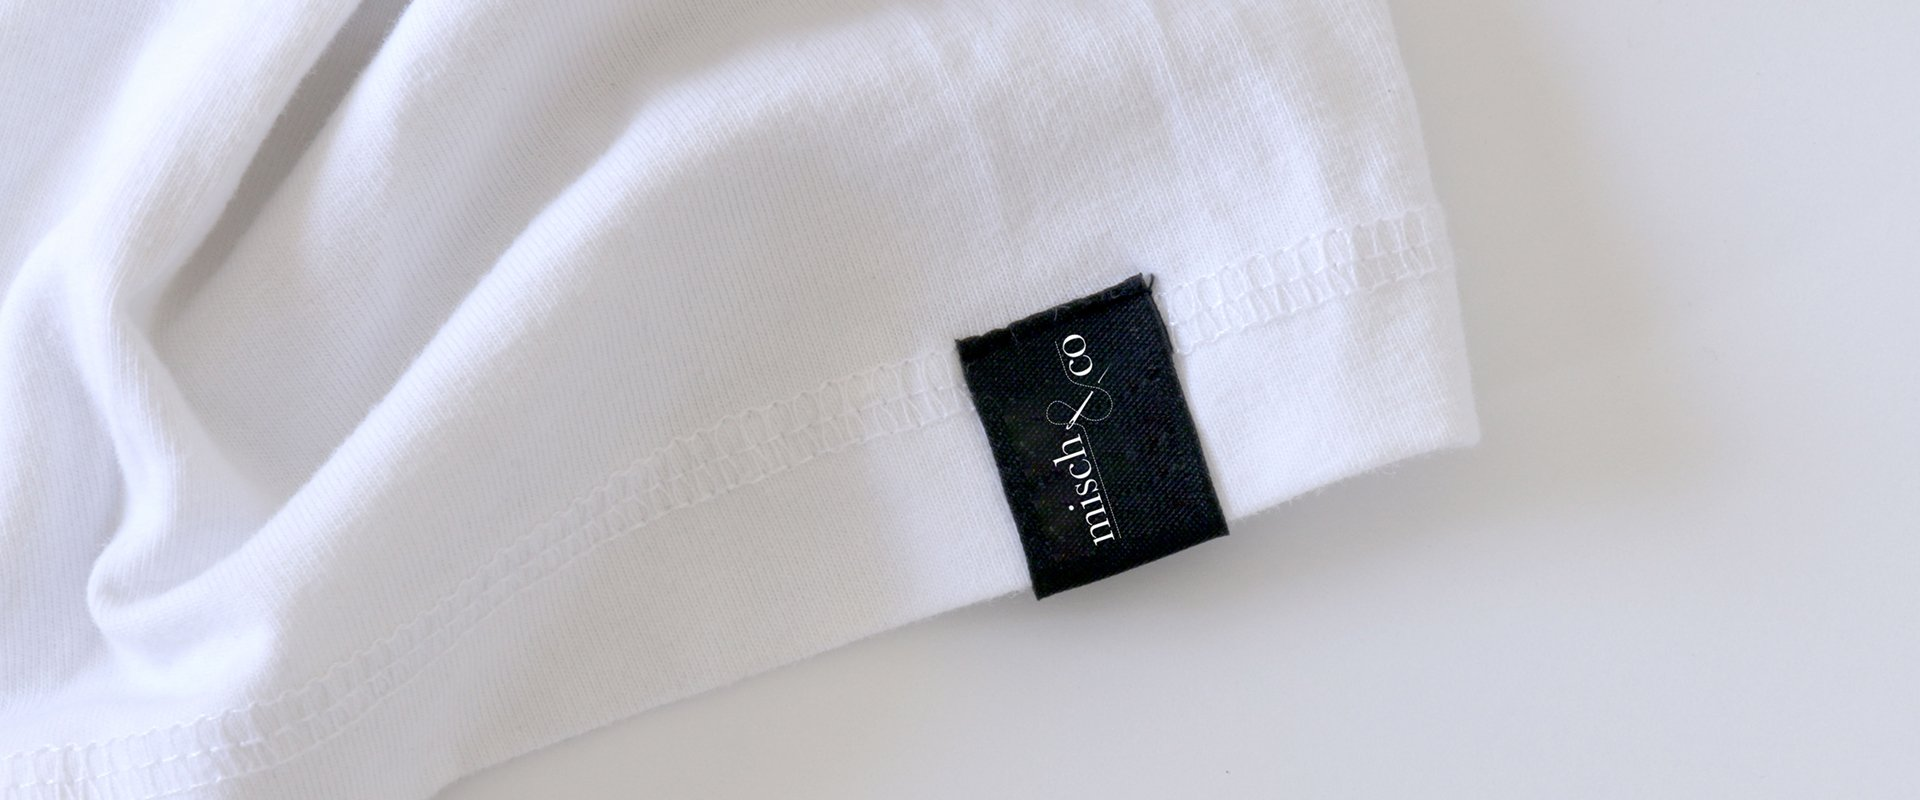 Branded t-shirt showing a small tag on the arm with company logo.